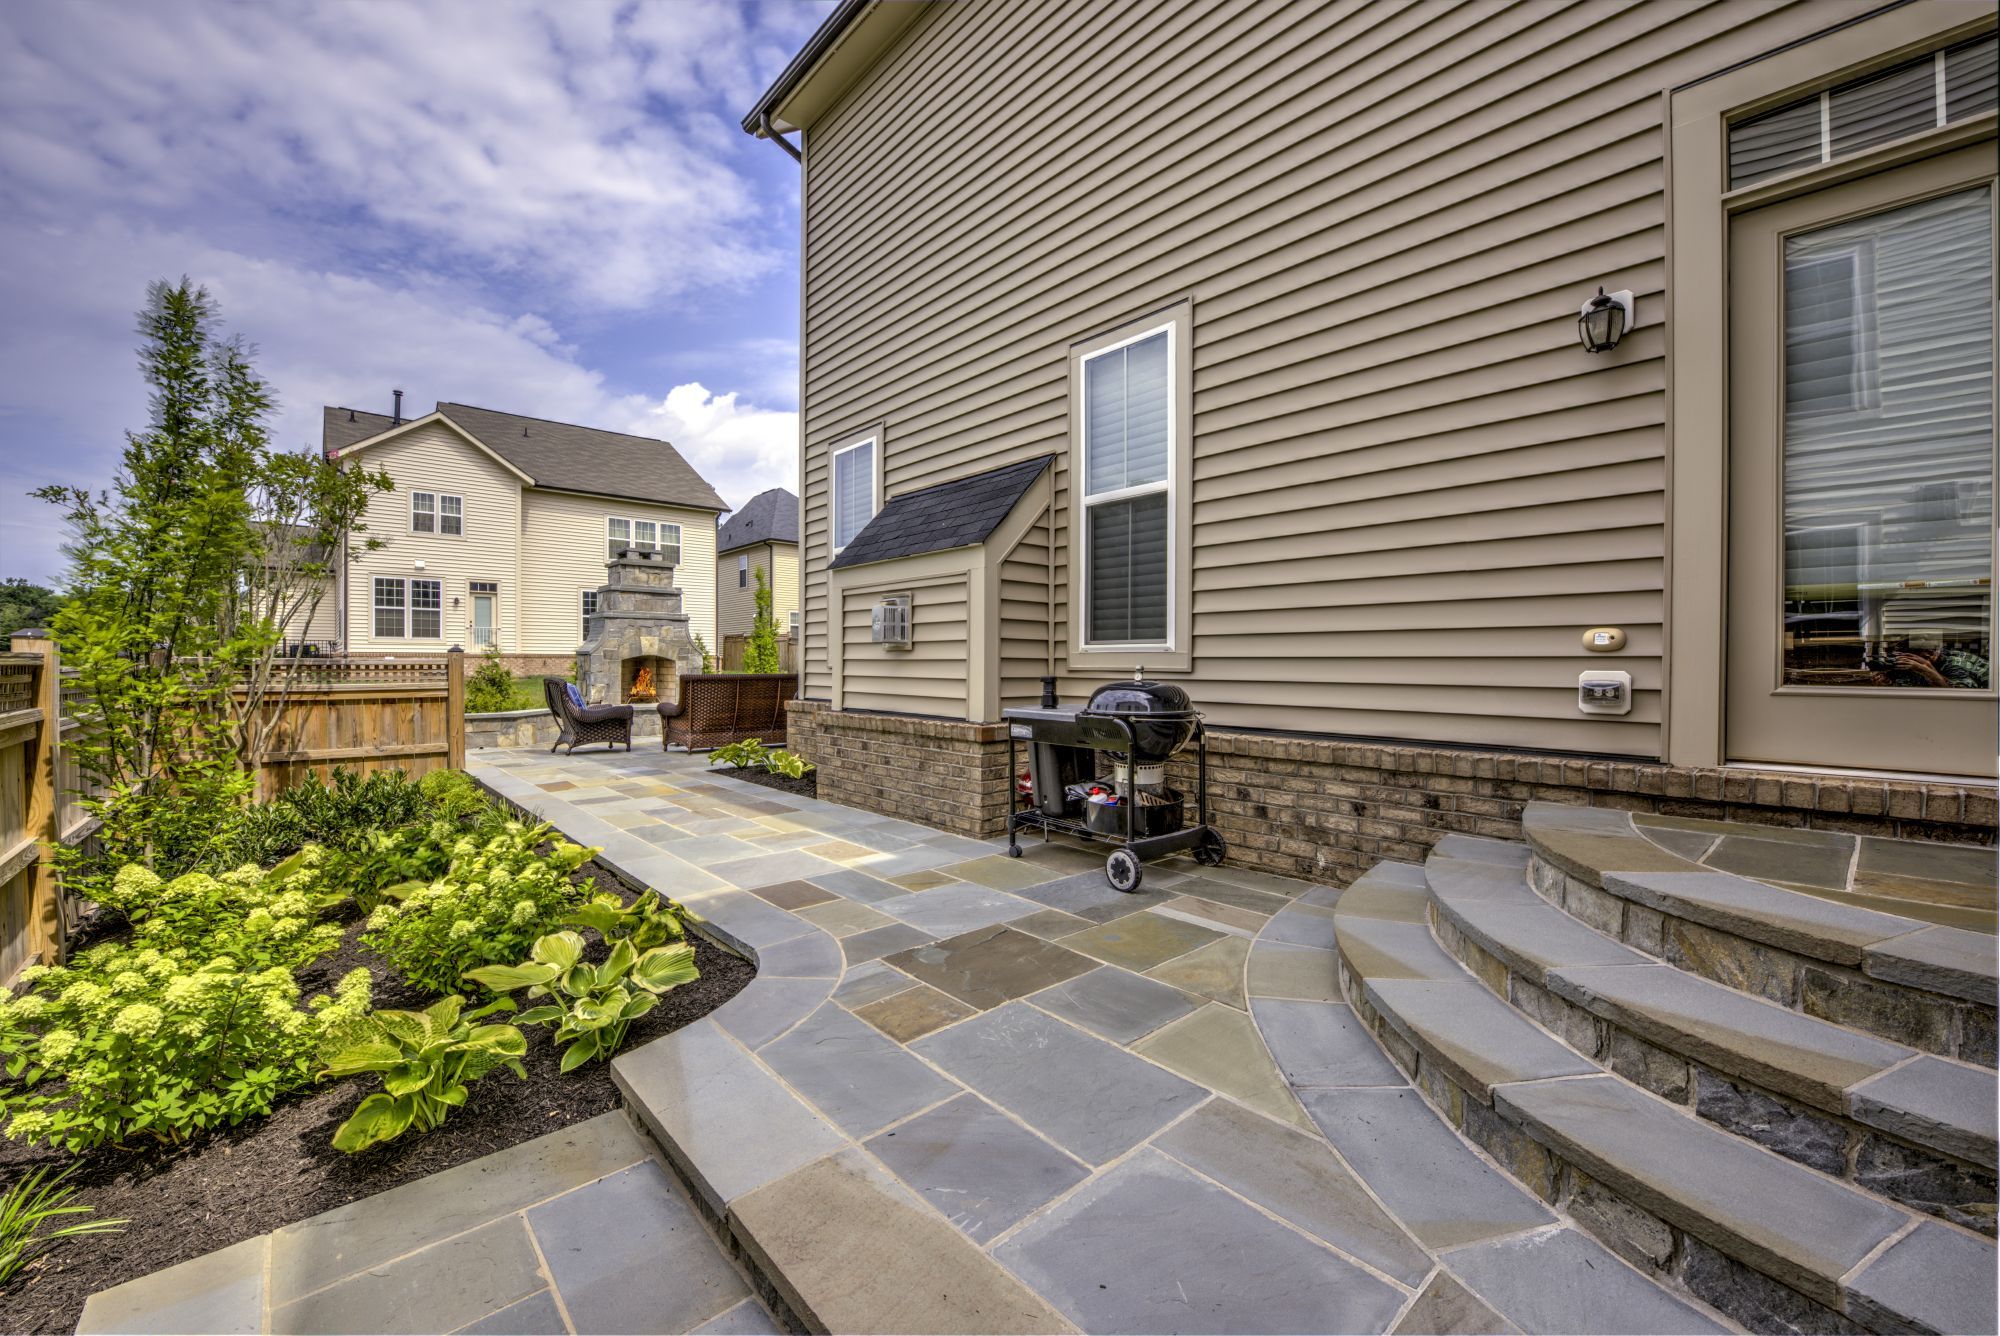 8 of the Best Hardscape Ideas for a Dream Backyard in Ashburn, Aldie and Leesburg, VA